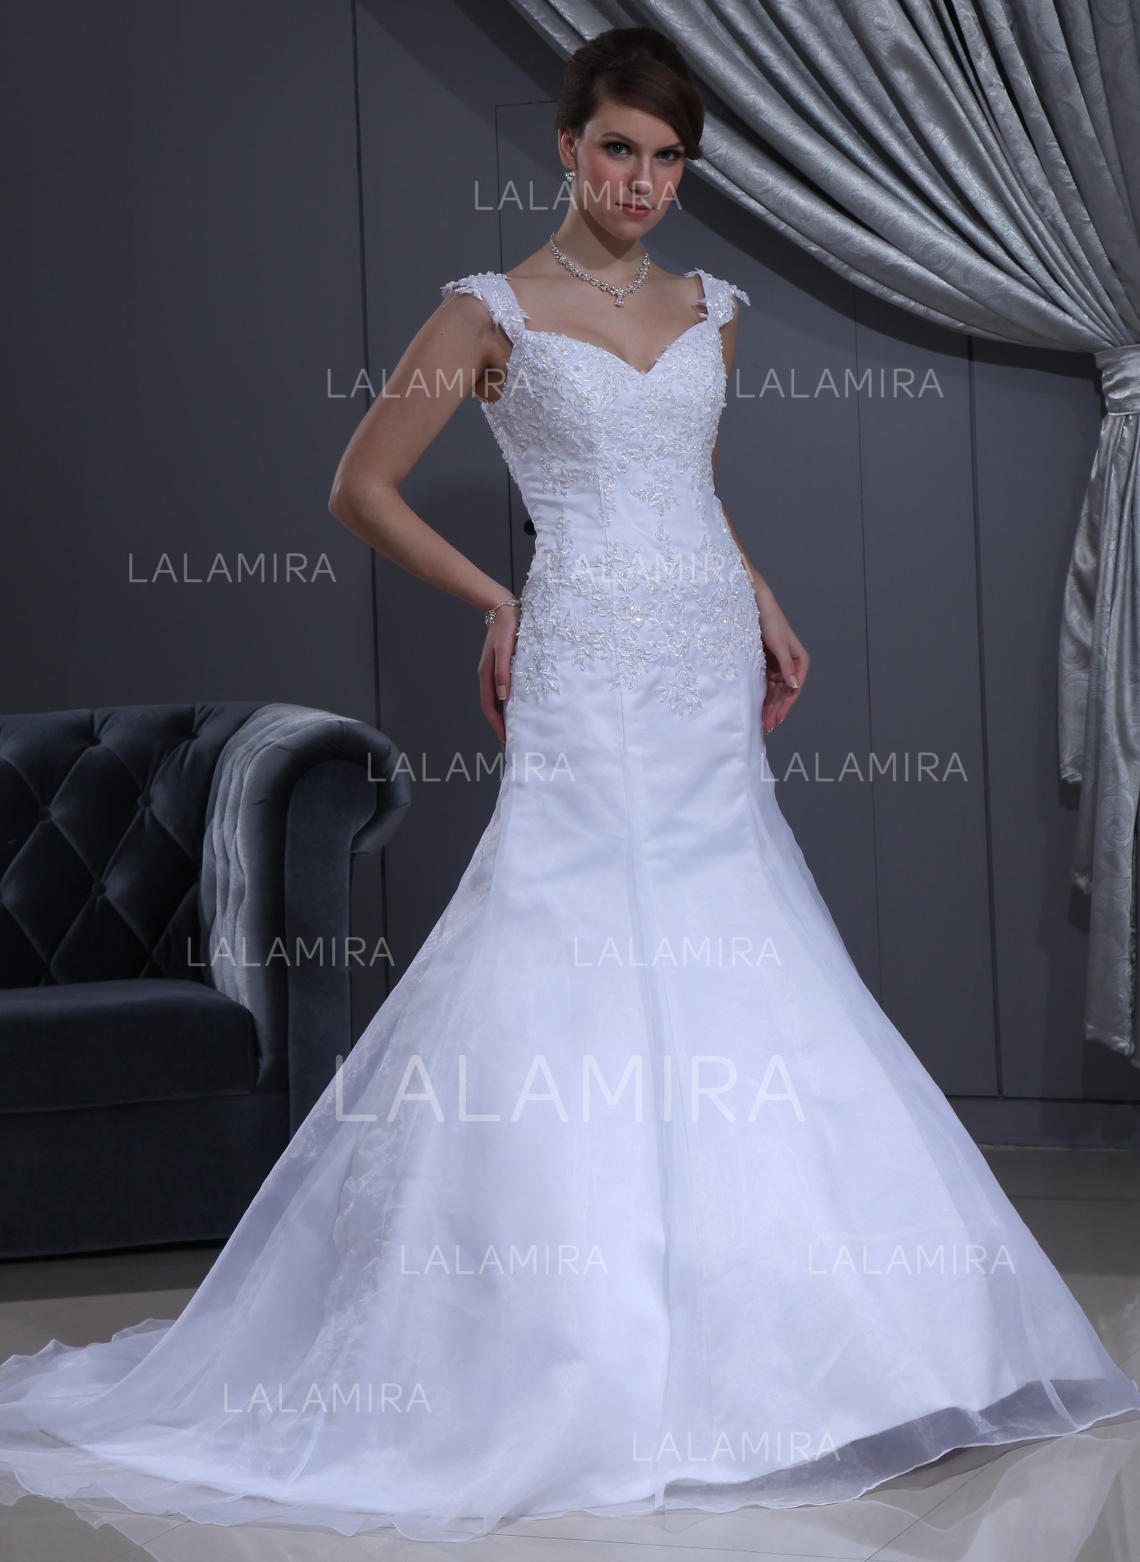 34fdc89599 Sweetheart Trumpet Mermaid Wedding Dresses Satin Organza Lace Beading  Sleeveless Chapel Train (002213221). Loading zoom